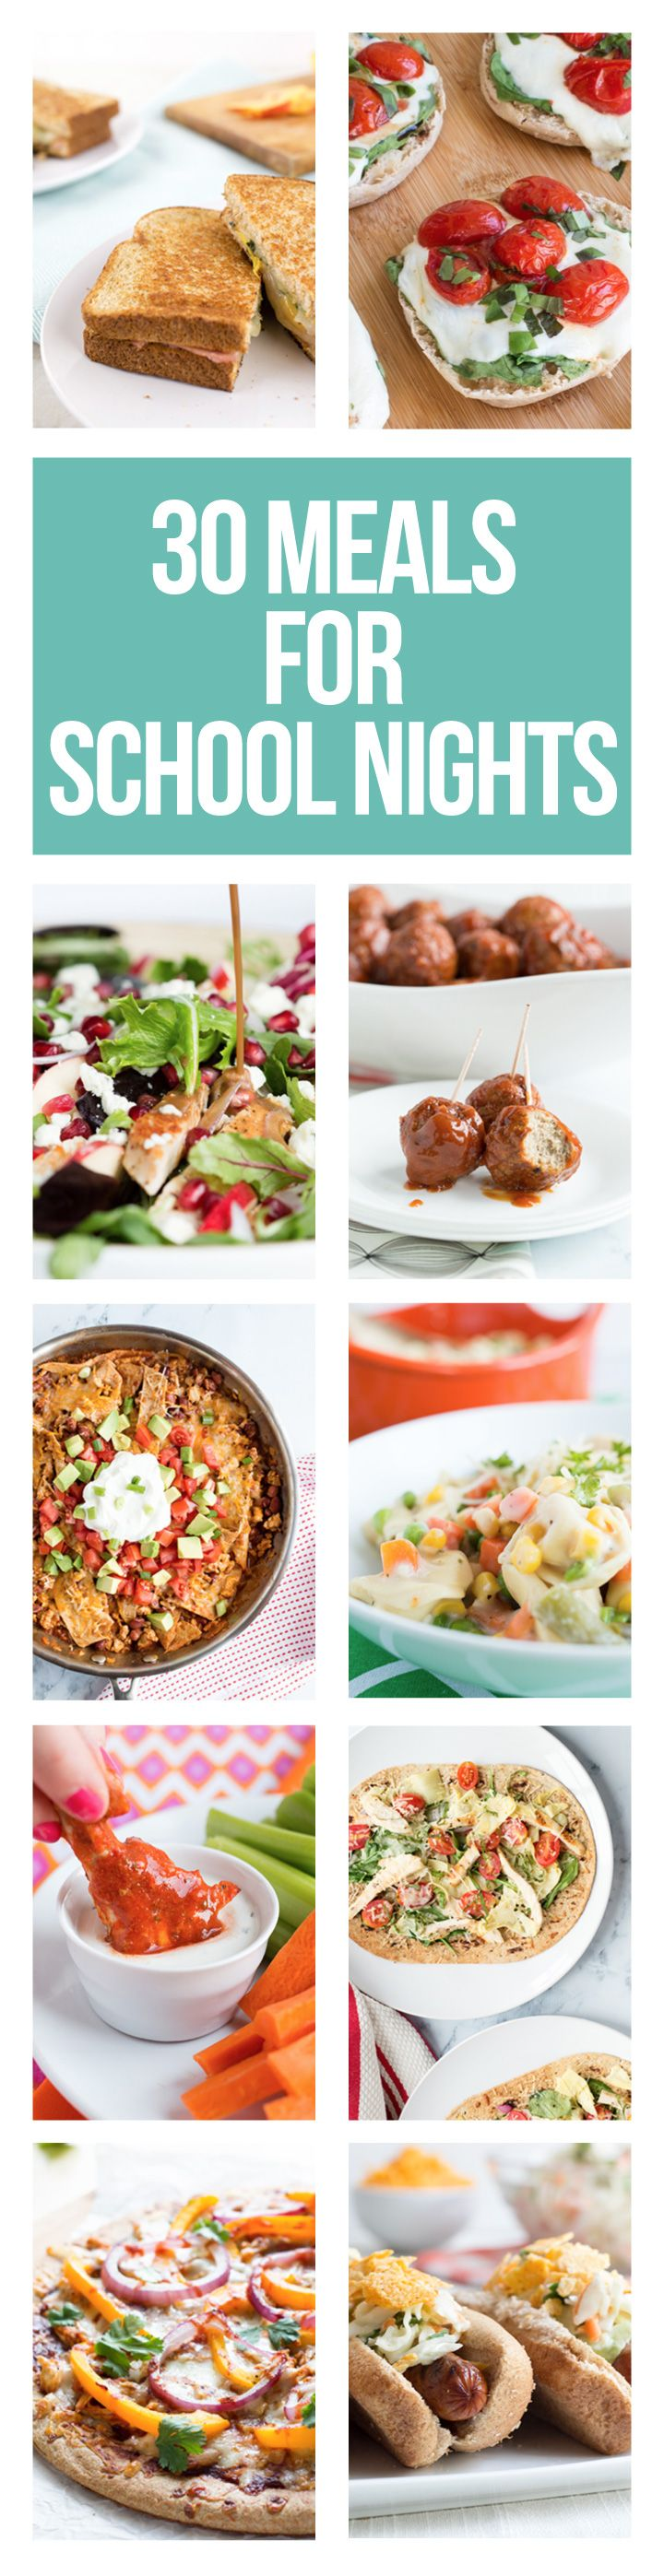 Quick meals for busy school nights.